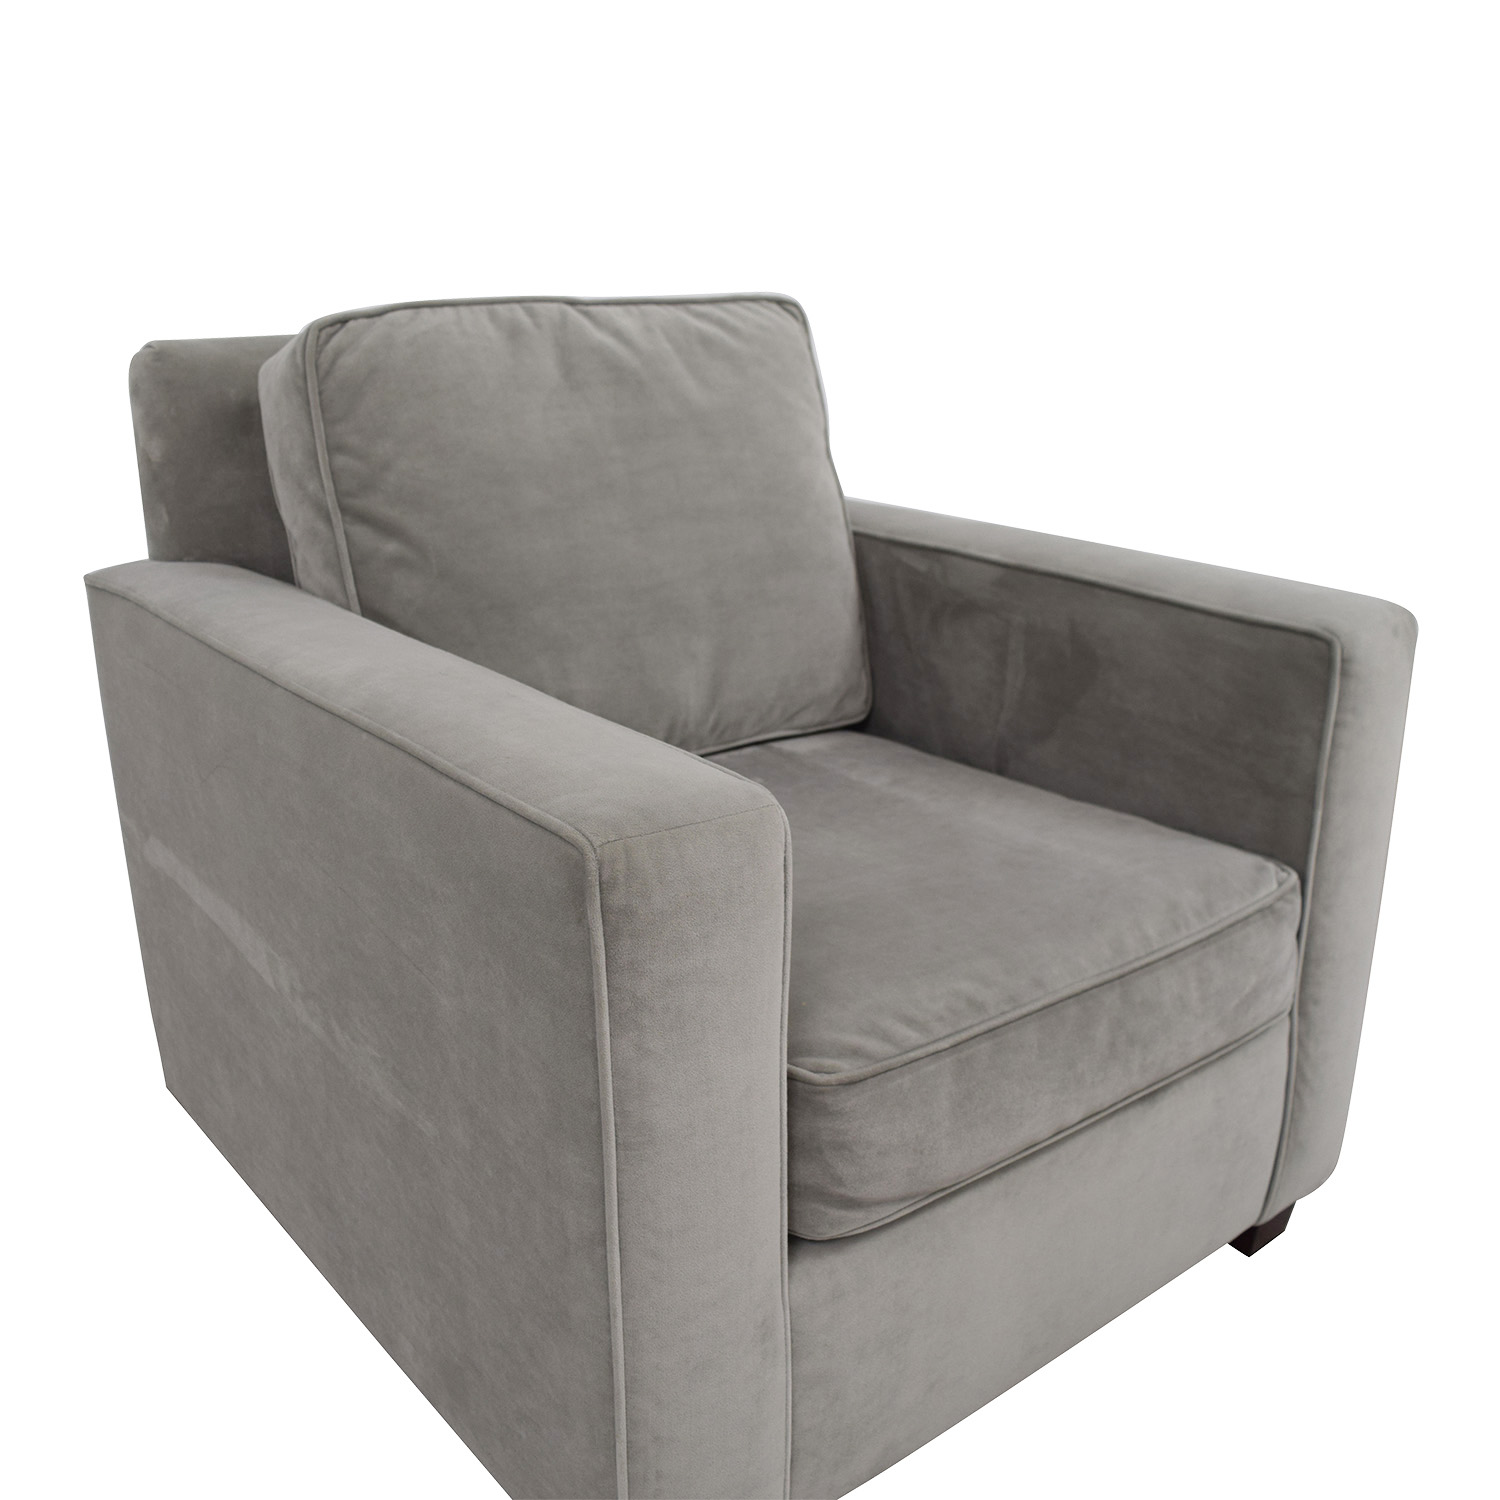 West Elm West Elm Grey Armchair discount